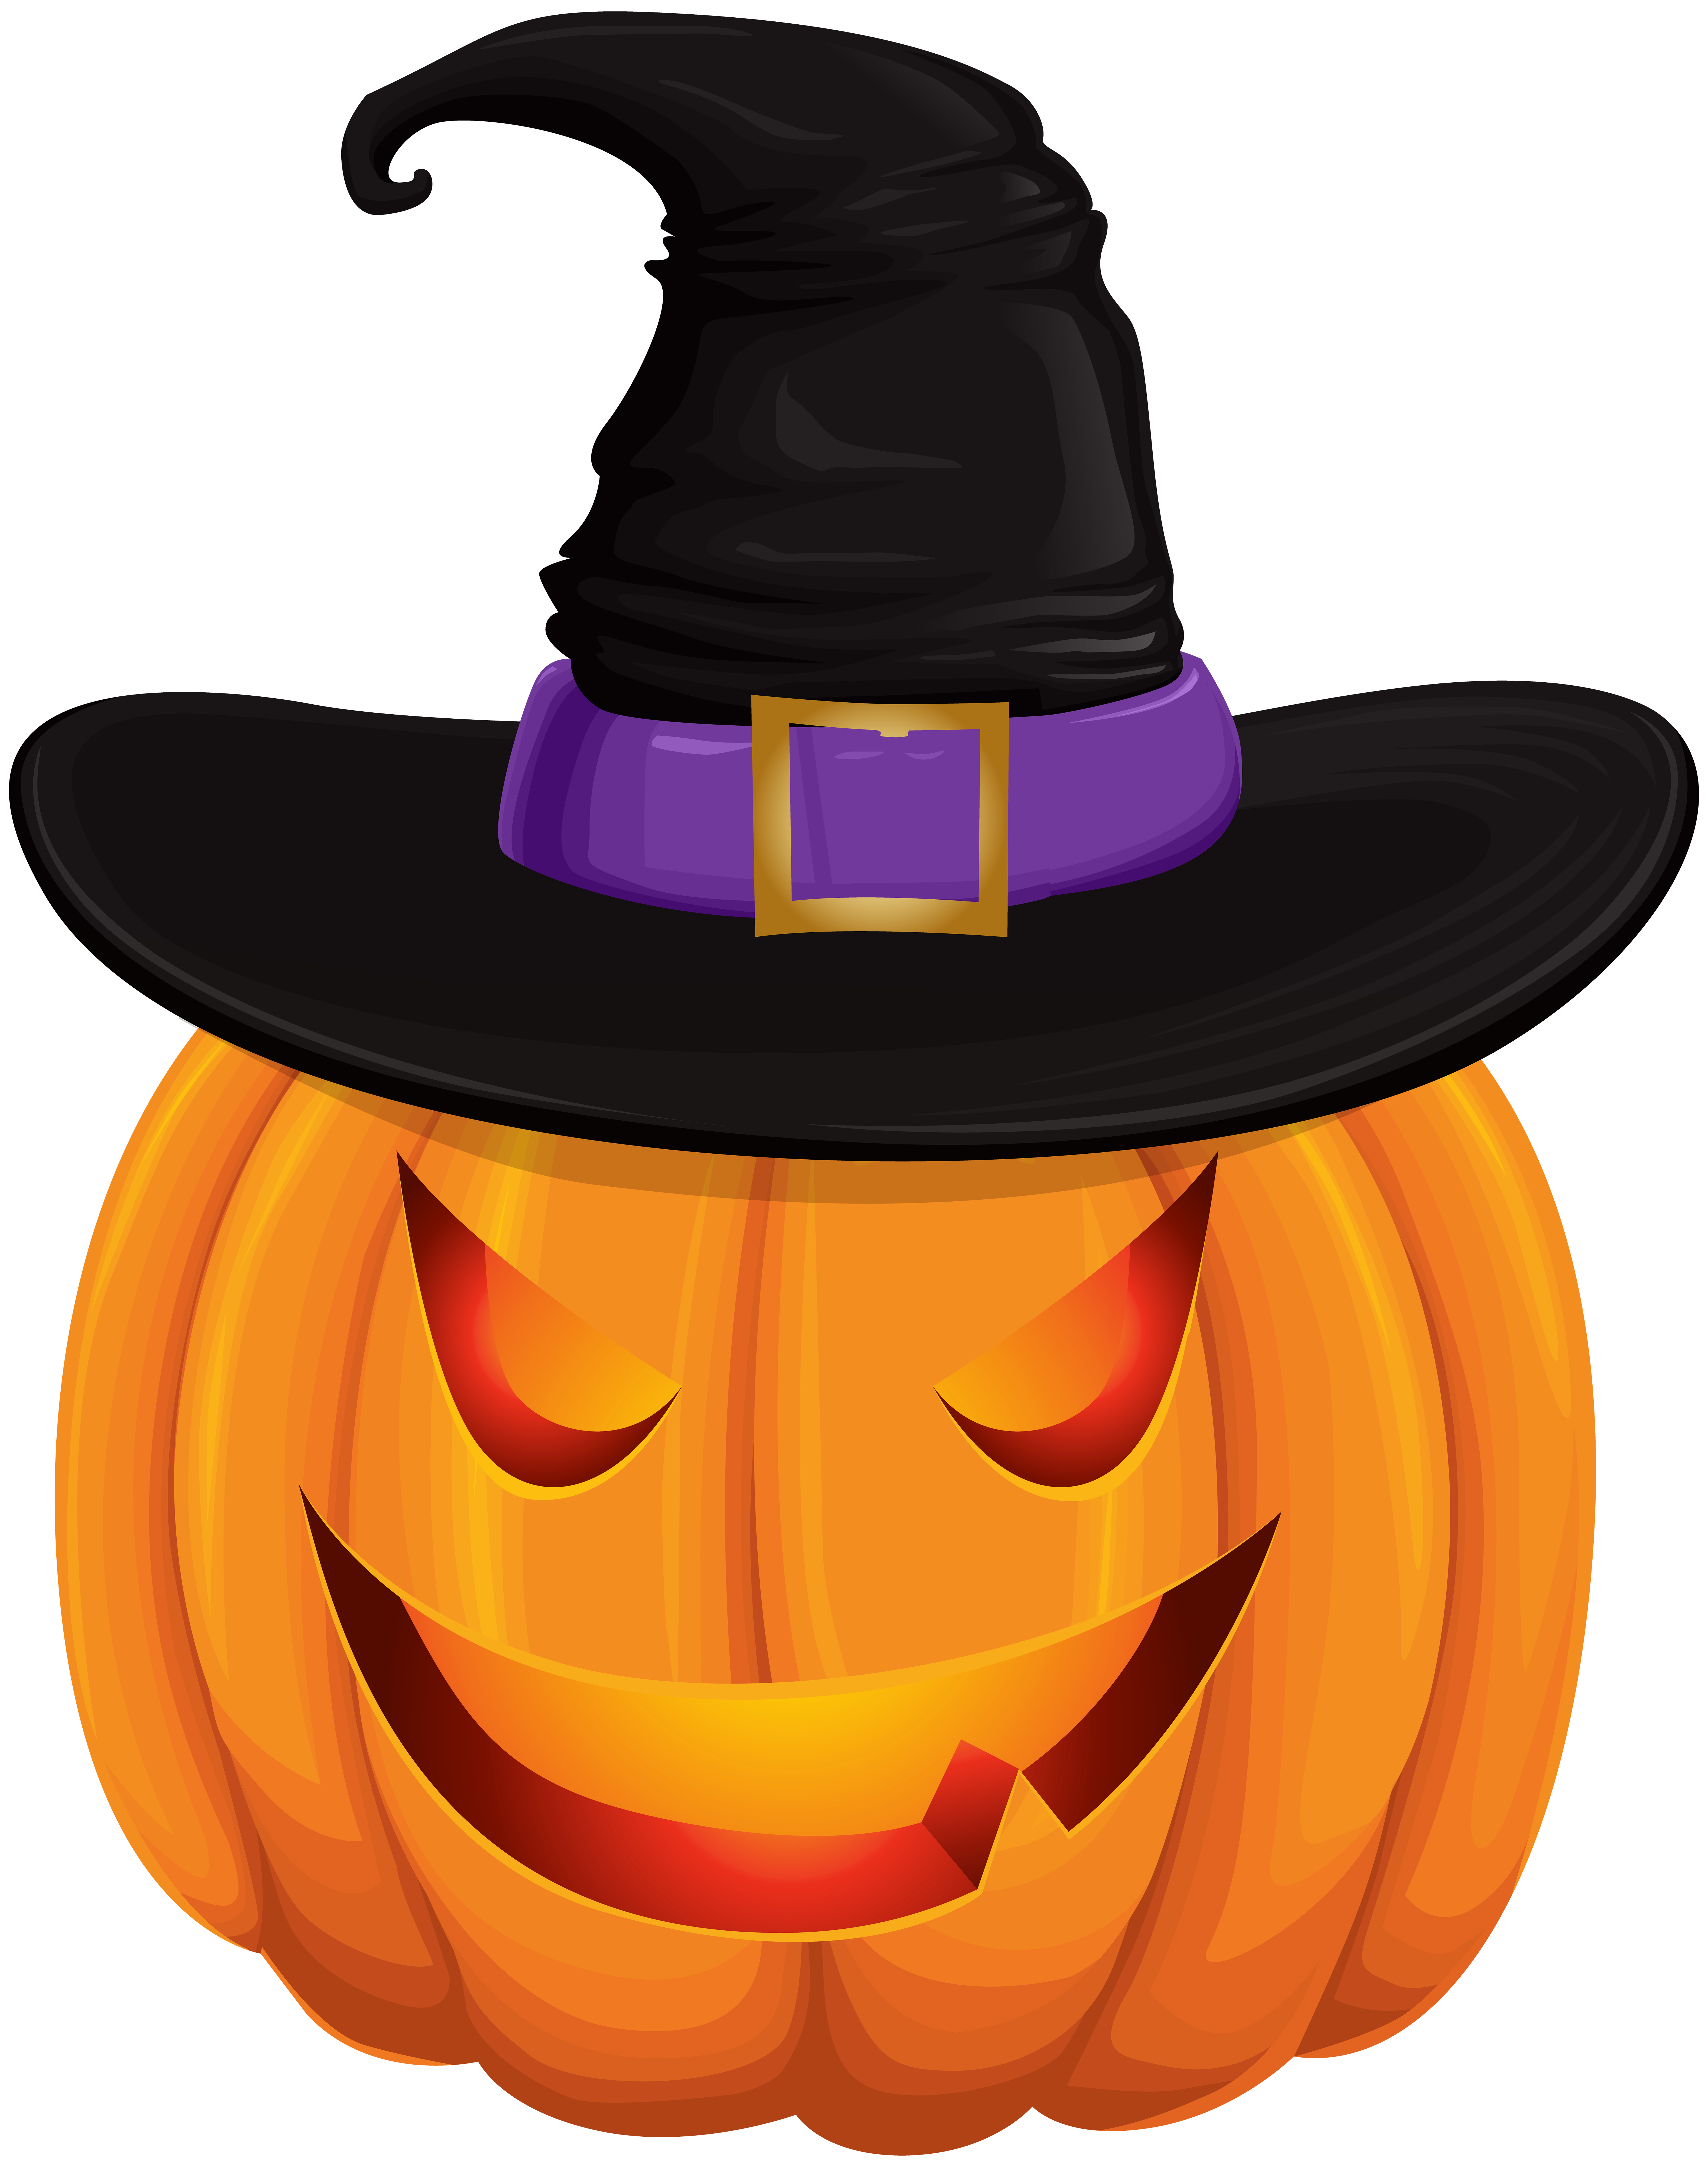 Pumpkin witch hat clipart free library Halloween Pumpkin with Witch Hat Transparent Clip Art | Gallery ... free library